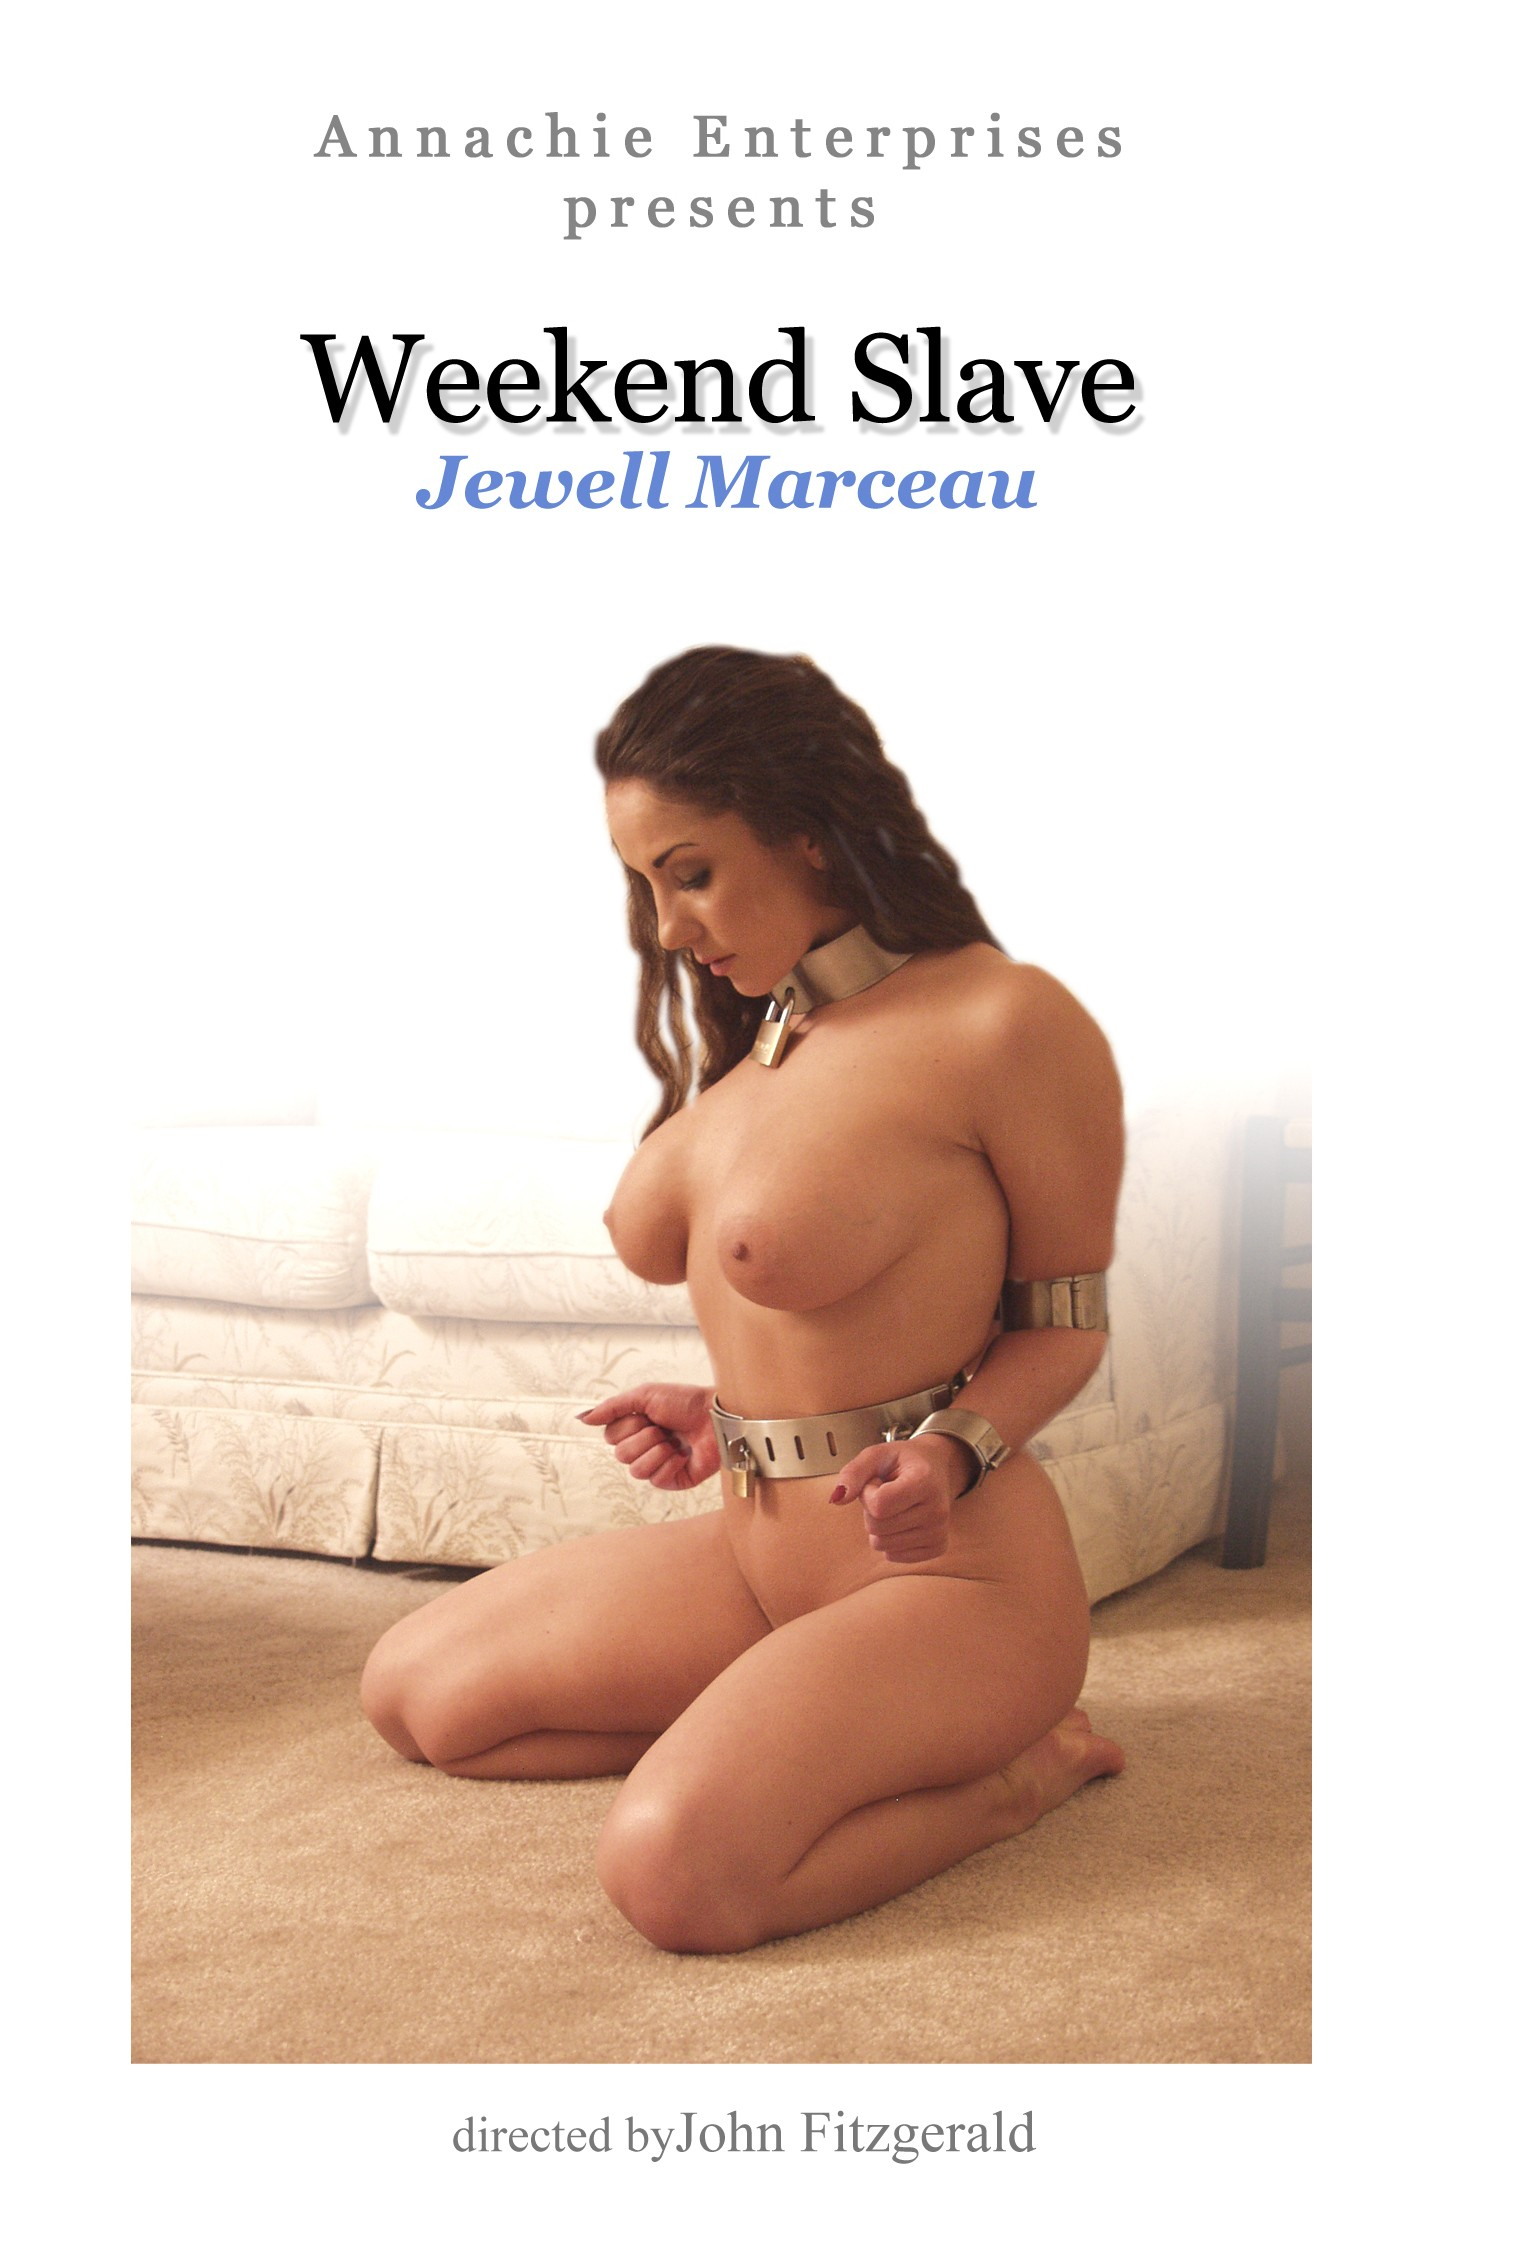 WEEKEND SLAVE: JEWEL MARCEAU